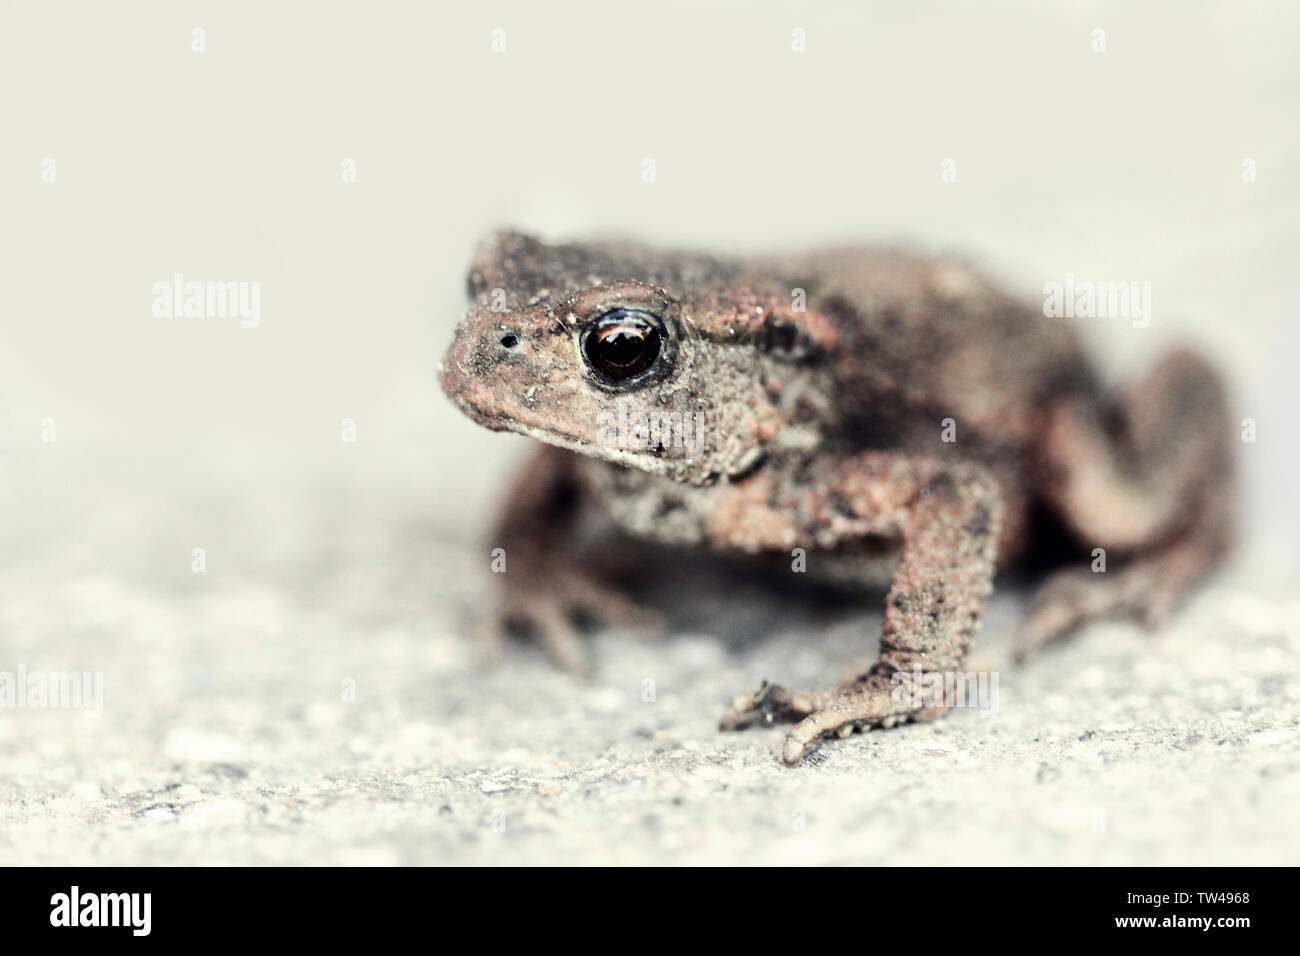 Common toad sitting on the stony ground - Stock Image